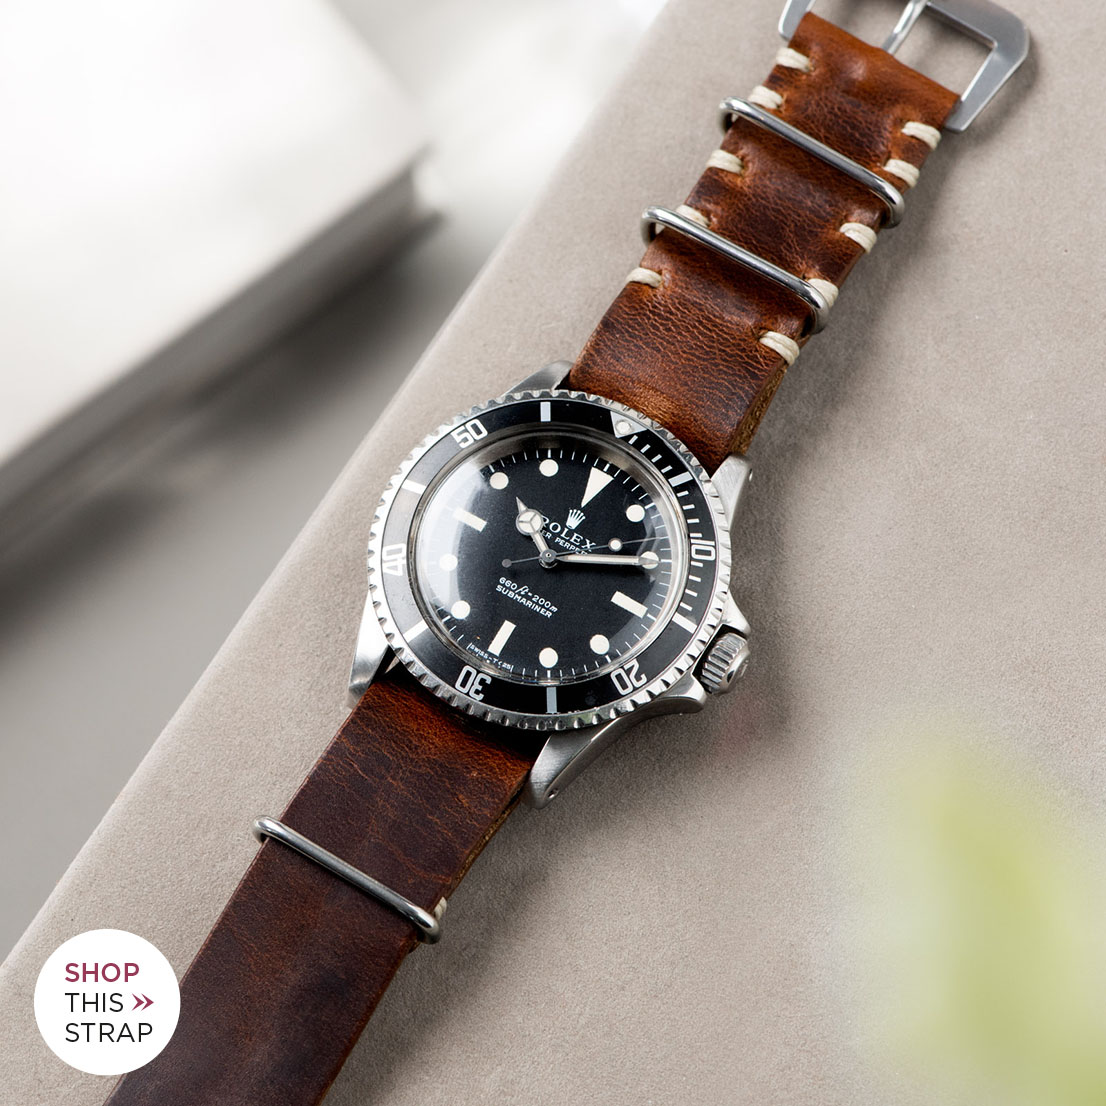 Bulang and Sons_Strap Guide_Rolex 5513 Submariner_SIENA BROWN NATO LEATHER WATCH STRAP